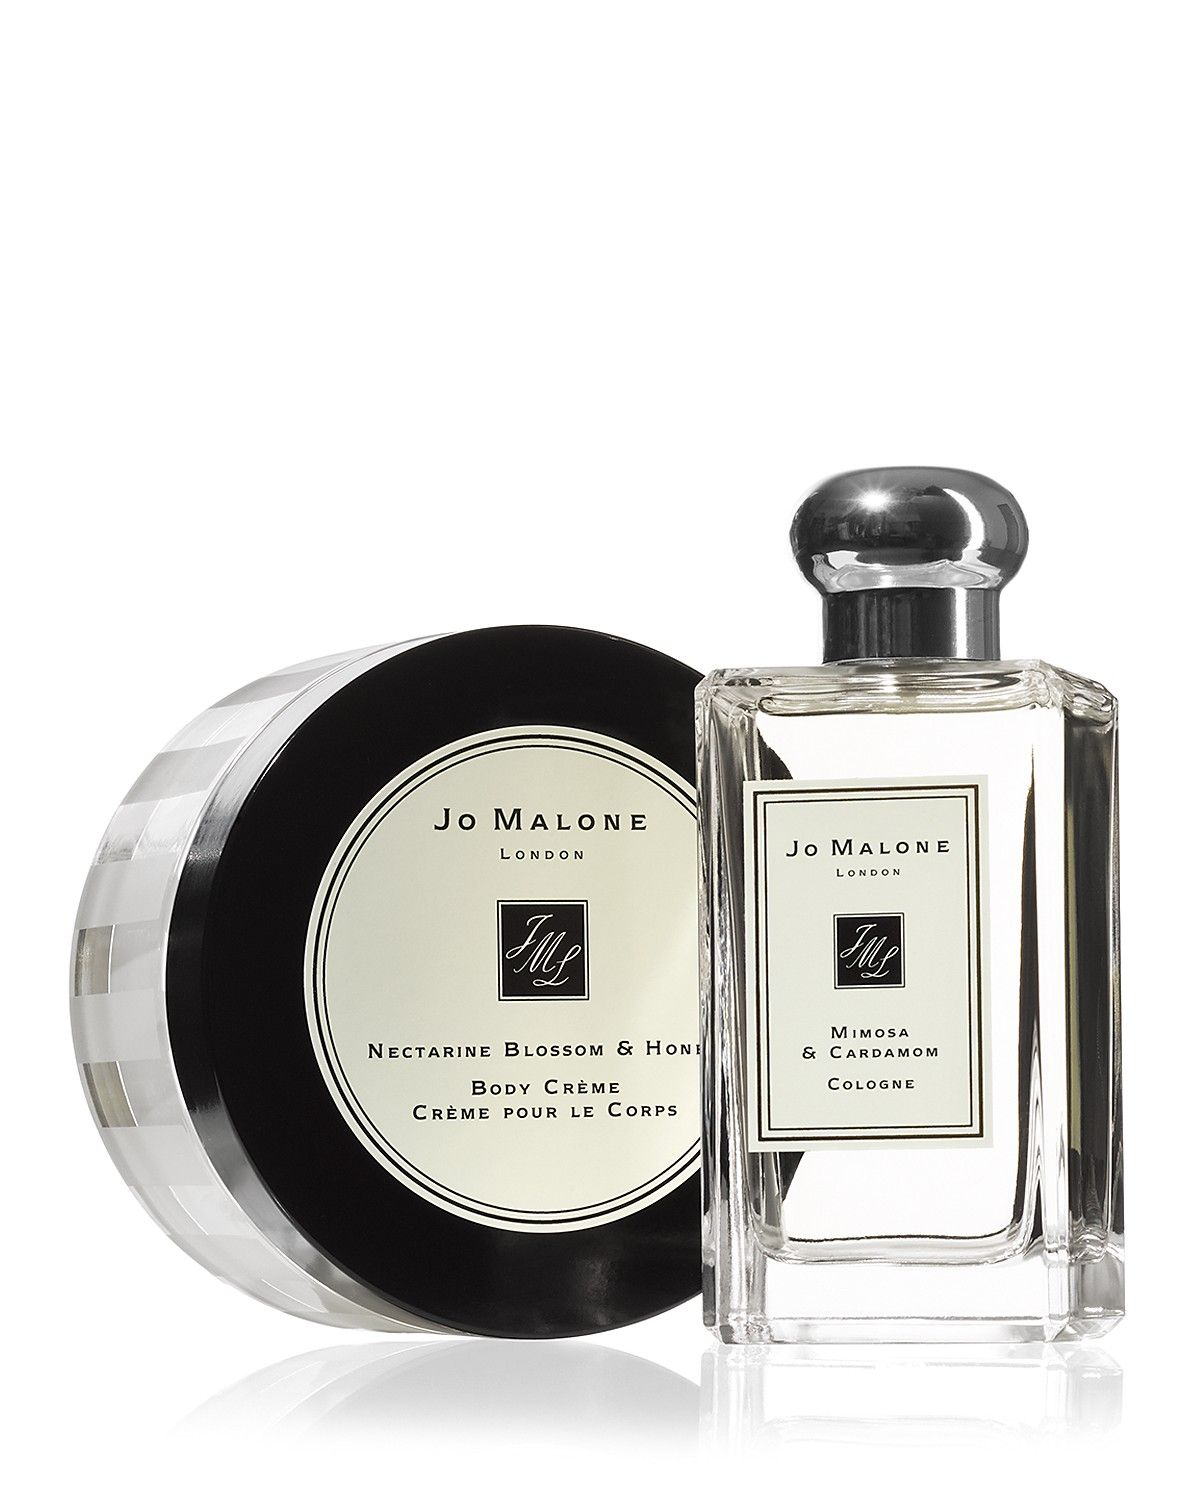 Jo Malone London Mimosa & Cardamom Cologne 3.4 oz. & Nectarine Blossom & Honey Body Crème - Cool Gift Combo | Bloomingdale's